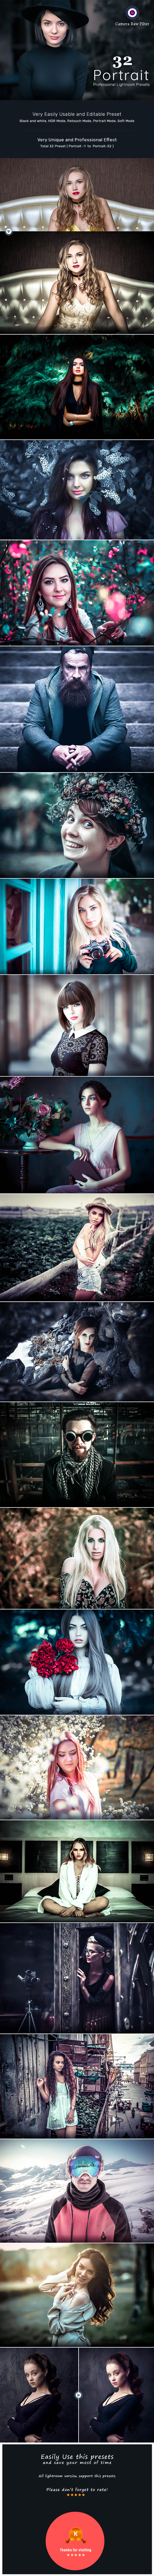 32 Professional Portrait | Lightroom Presets - Portrait Lightroom Presets